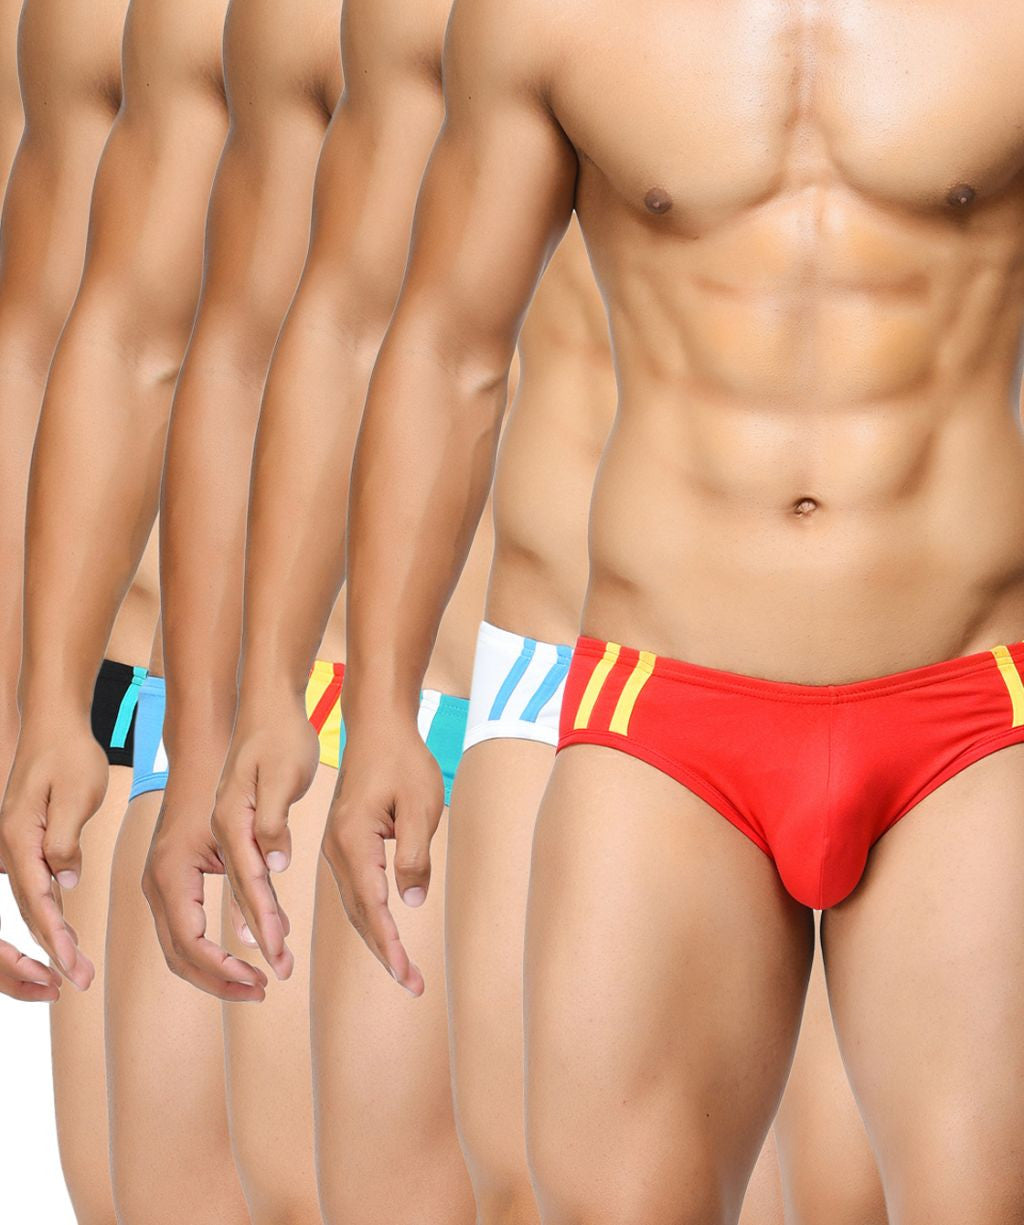 BASIICS Men Striped and Solid Fashion Cotton Spandex Briefs Multipack